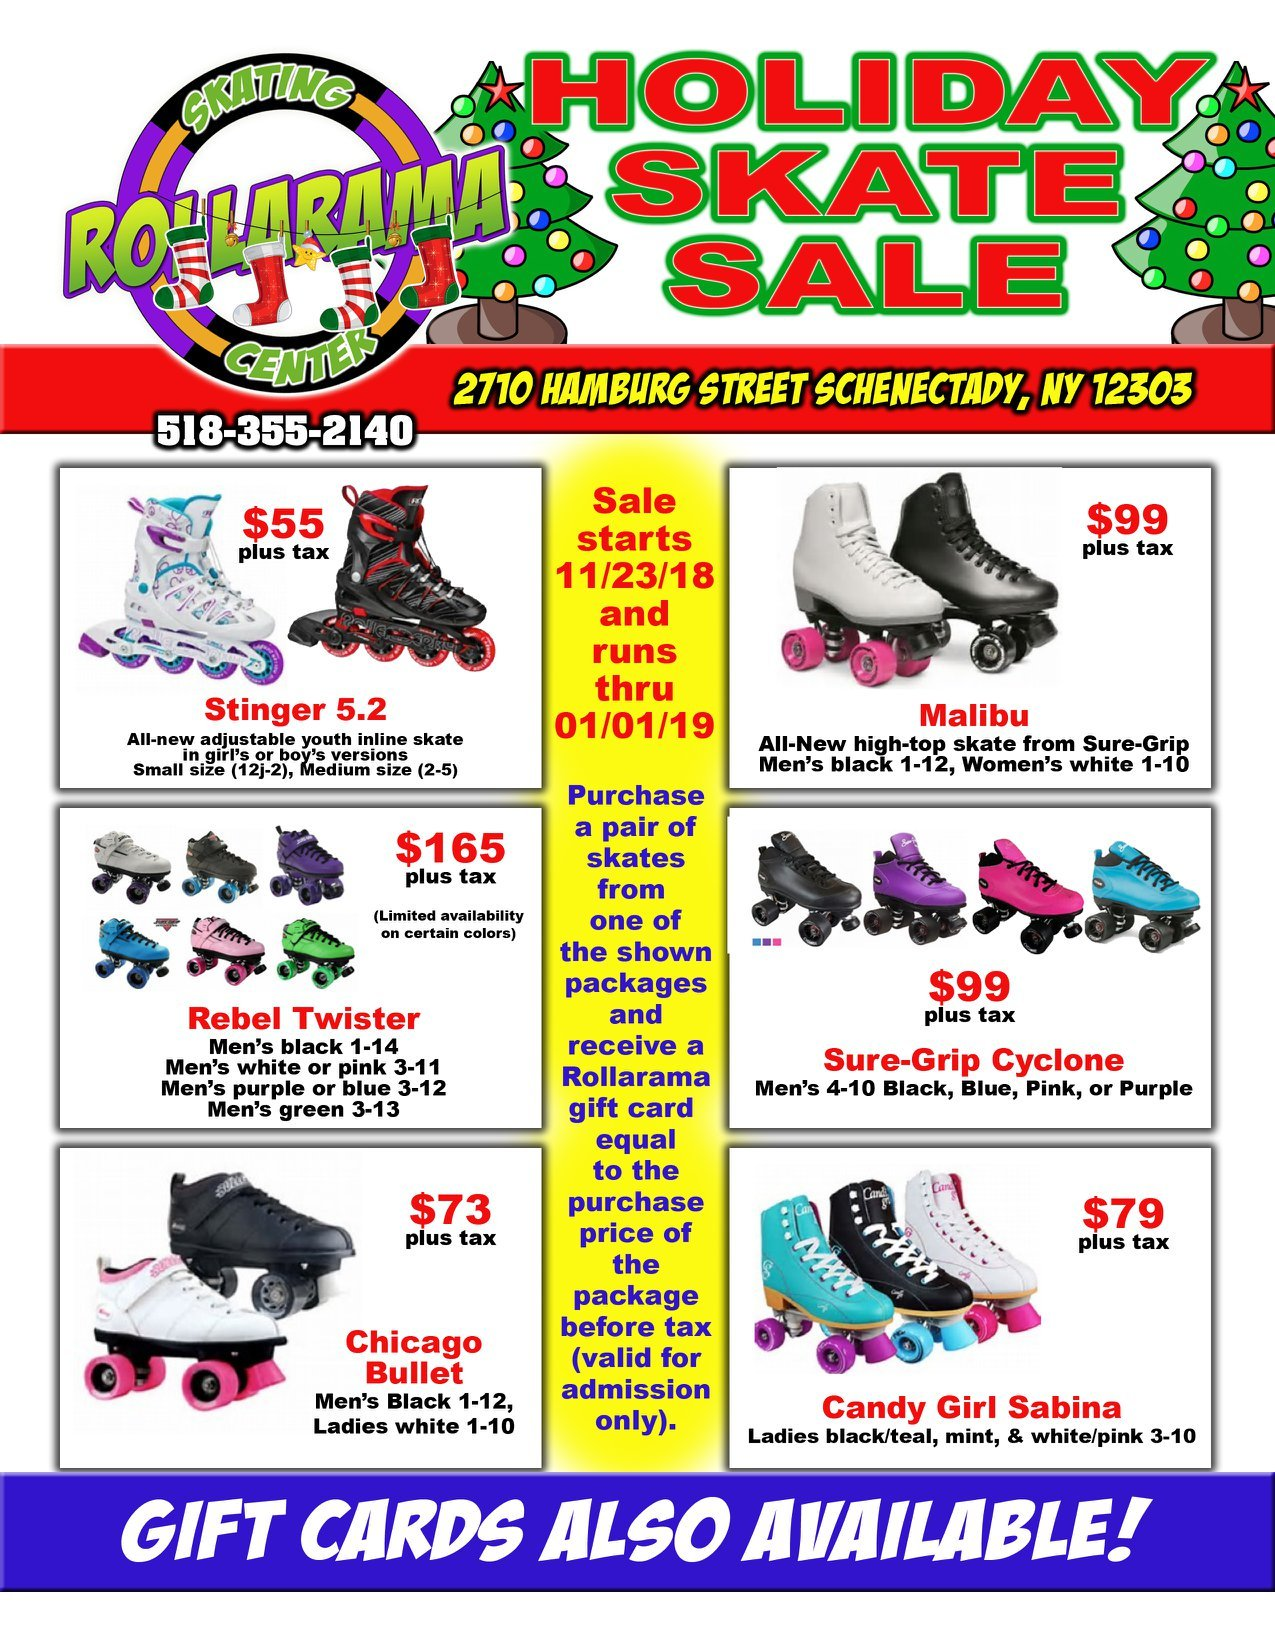 Holiday Skate Sale now at Rollarama!